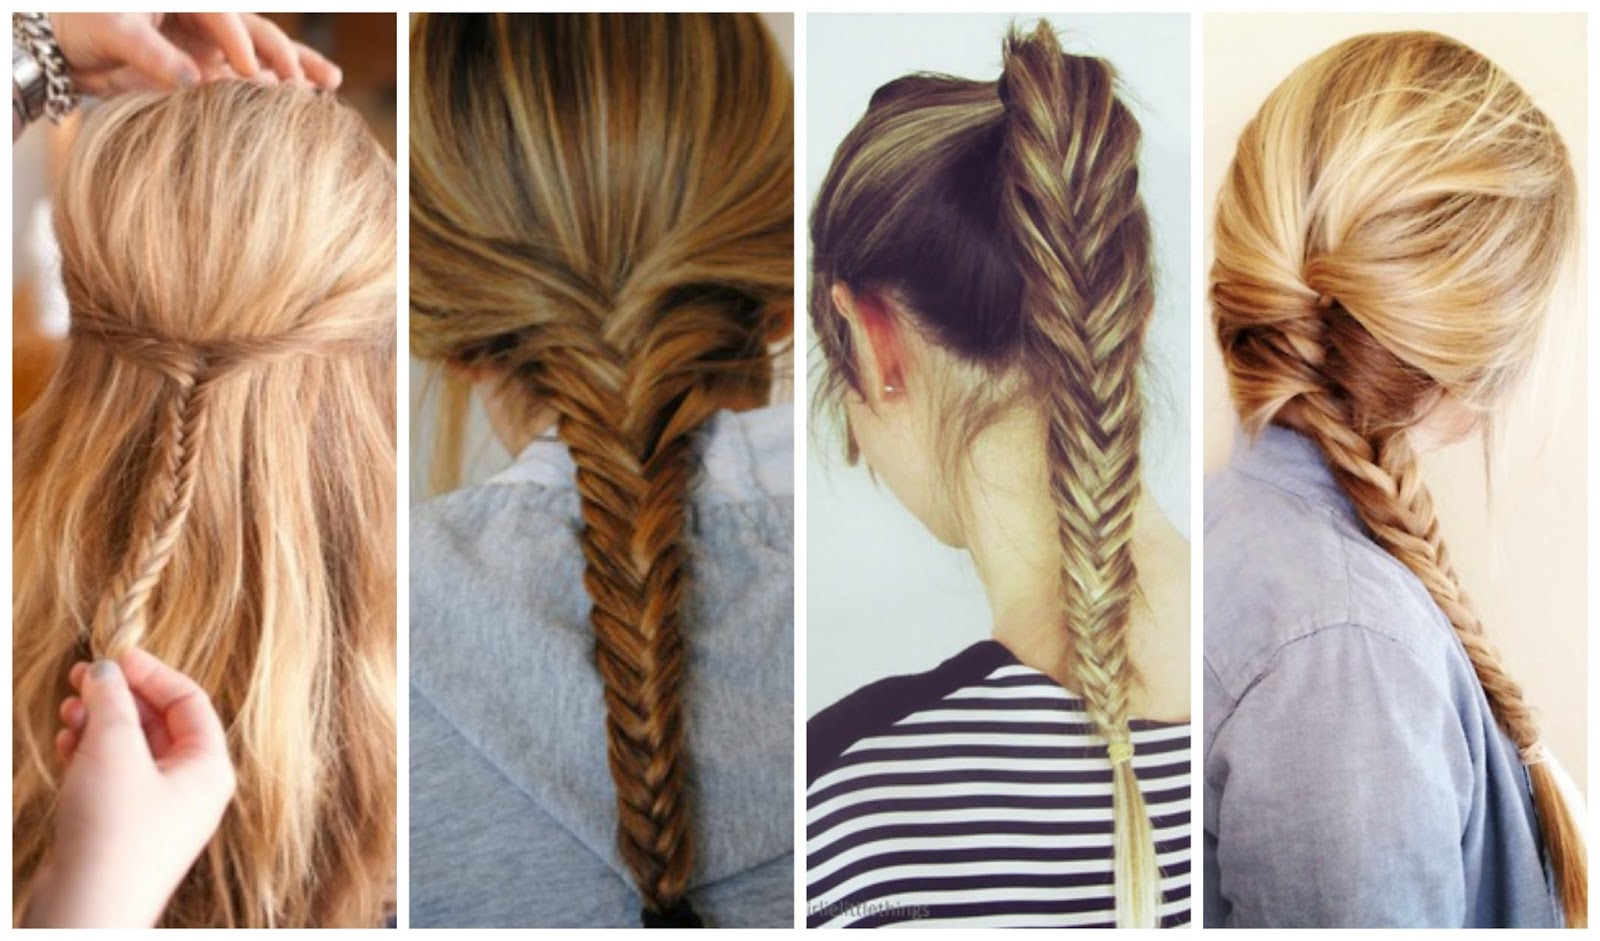 new hairstyle 2016: tumblr hairstyles for school